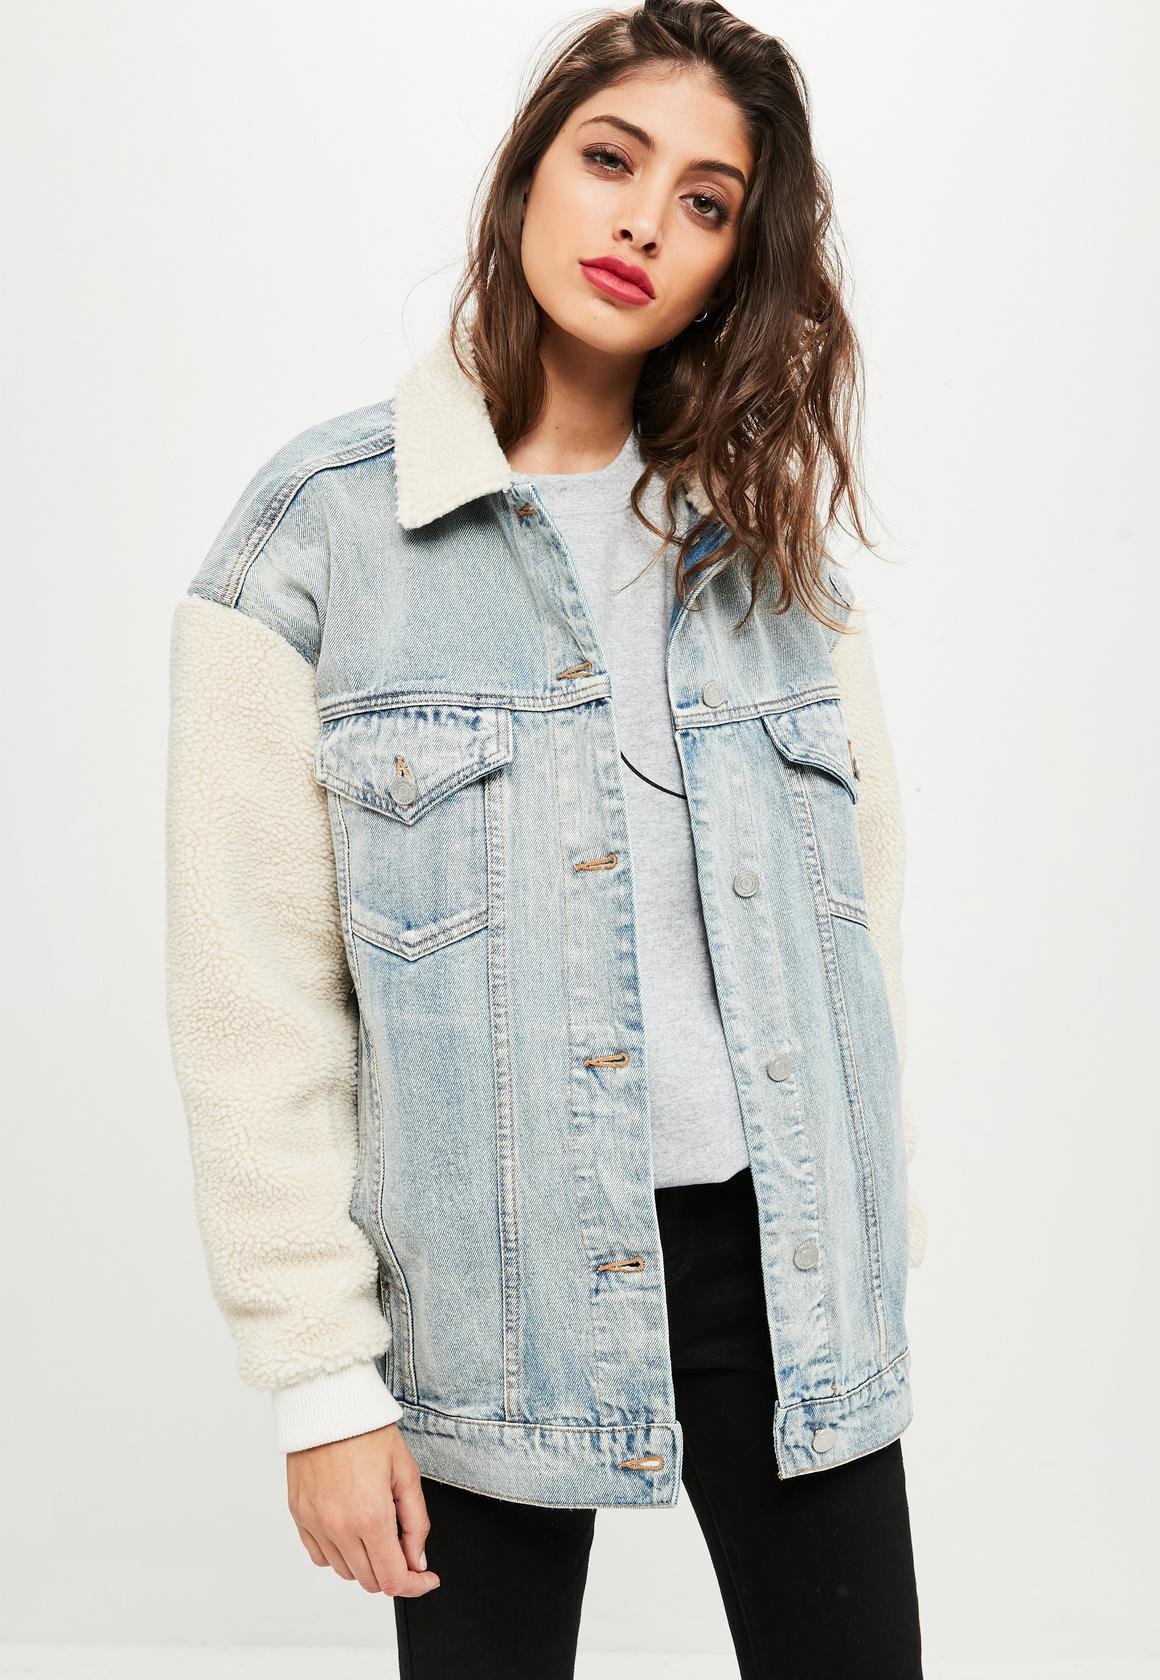 So This Is The 68 Missguided Jacket That We Keep Spotting Naomi Coat Oversized Denim With Teddy Sleeves And Collar Perfect For Both Season In Terms Of Practicality Why